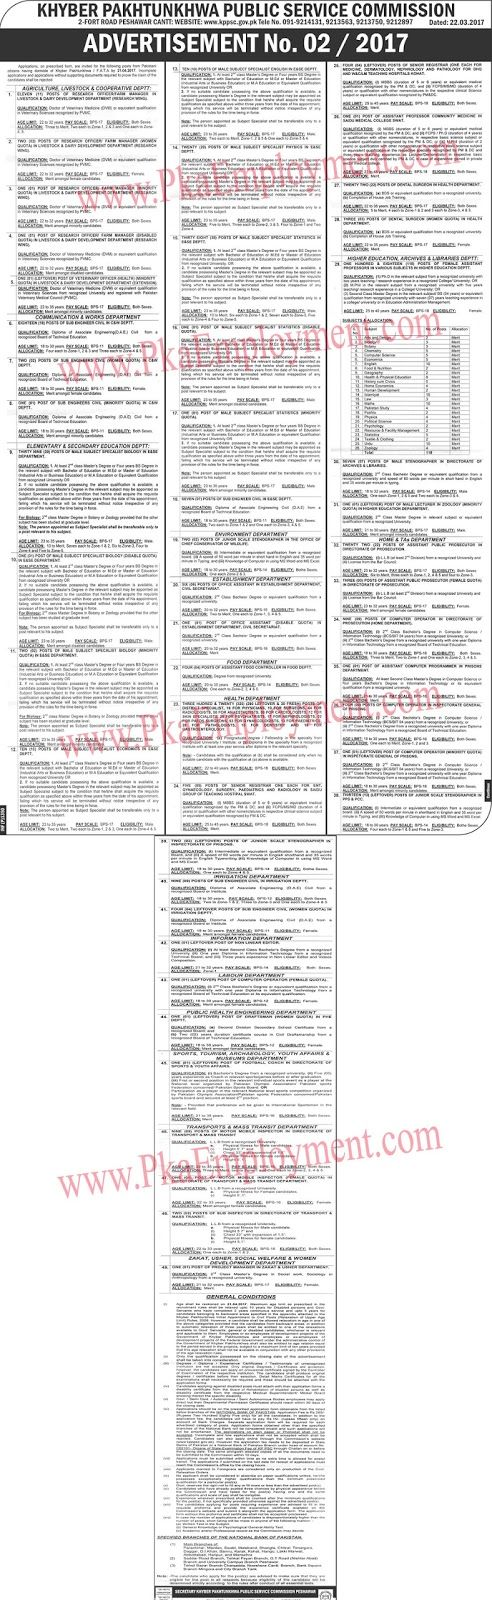 Khyber Pakhtunkhuwa Public Service Commission Jobs 2017Applications on prescribed from are invited for the following posts from Pakistani citizens having domicile of Khyber Pakhtunkhuwa?FATA by 21.04.207. Incomplete Applications and applications without supporting documents required to prove the claim of the Candidates shall be rejected.Number of Posts is 836Last Date of Applying is 21.April.207Vacancies  Research Officer/Farm Manager (For Men)  Research Officer/Farm Manager (For Women )…